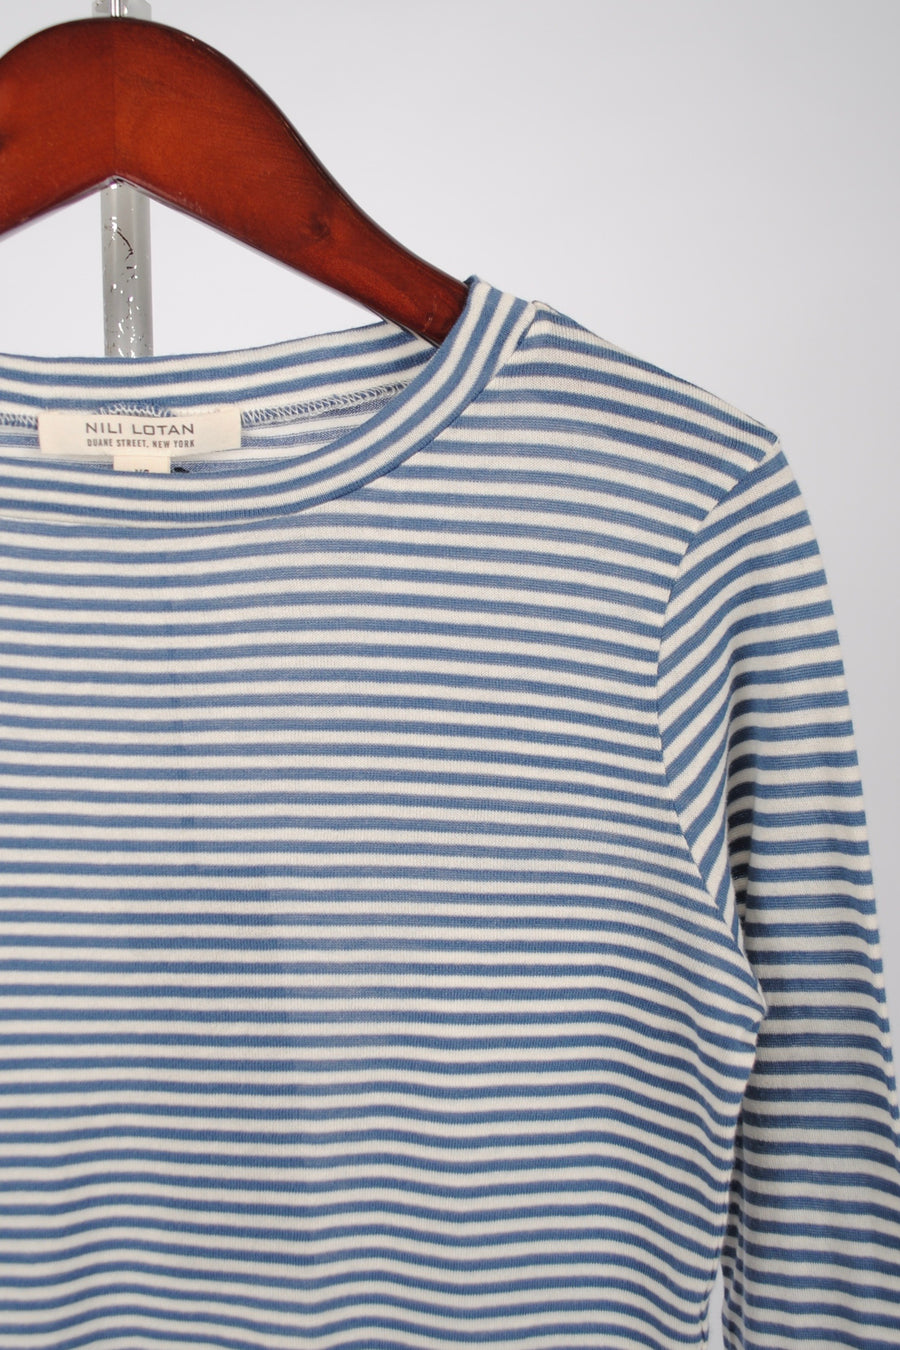 Long Sleeve Shirt - Sailor Blue/White Stripe